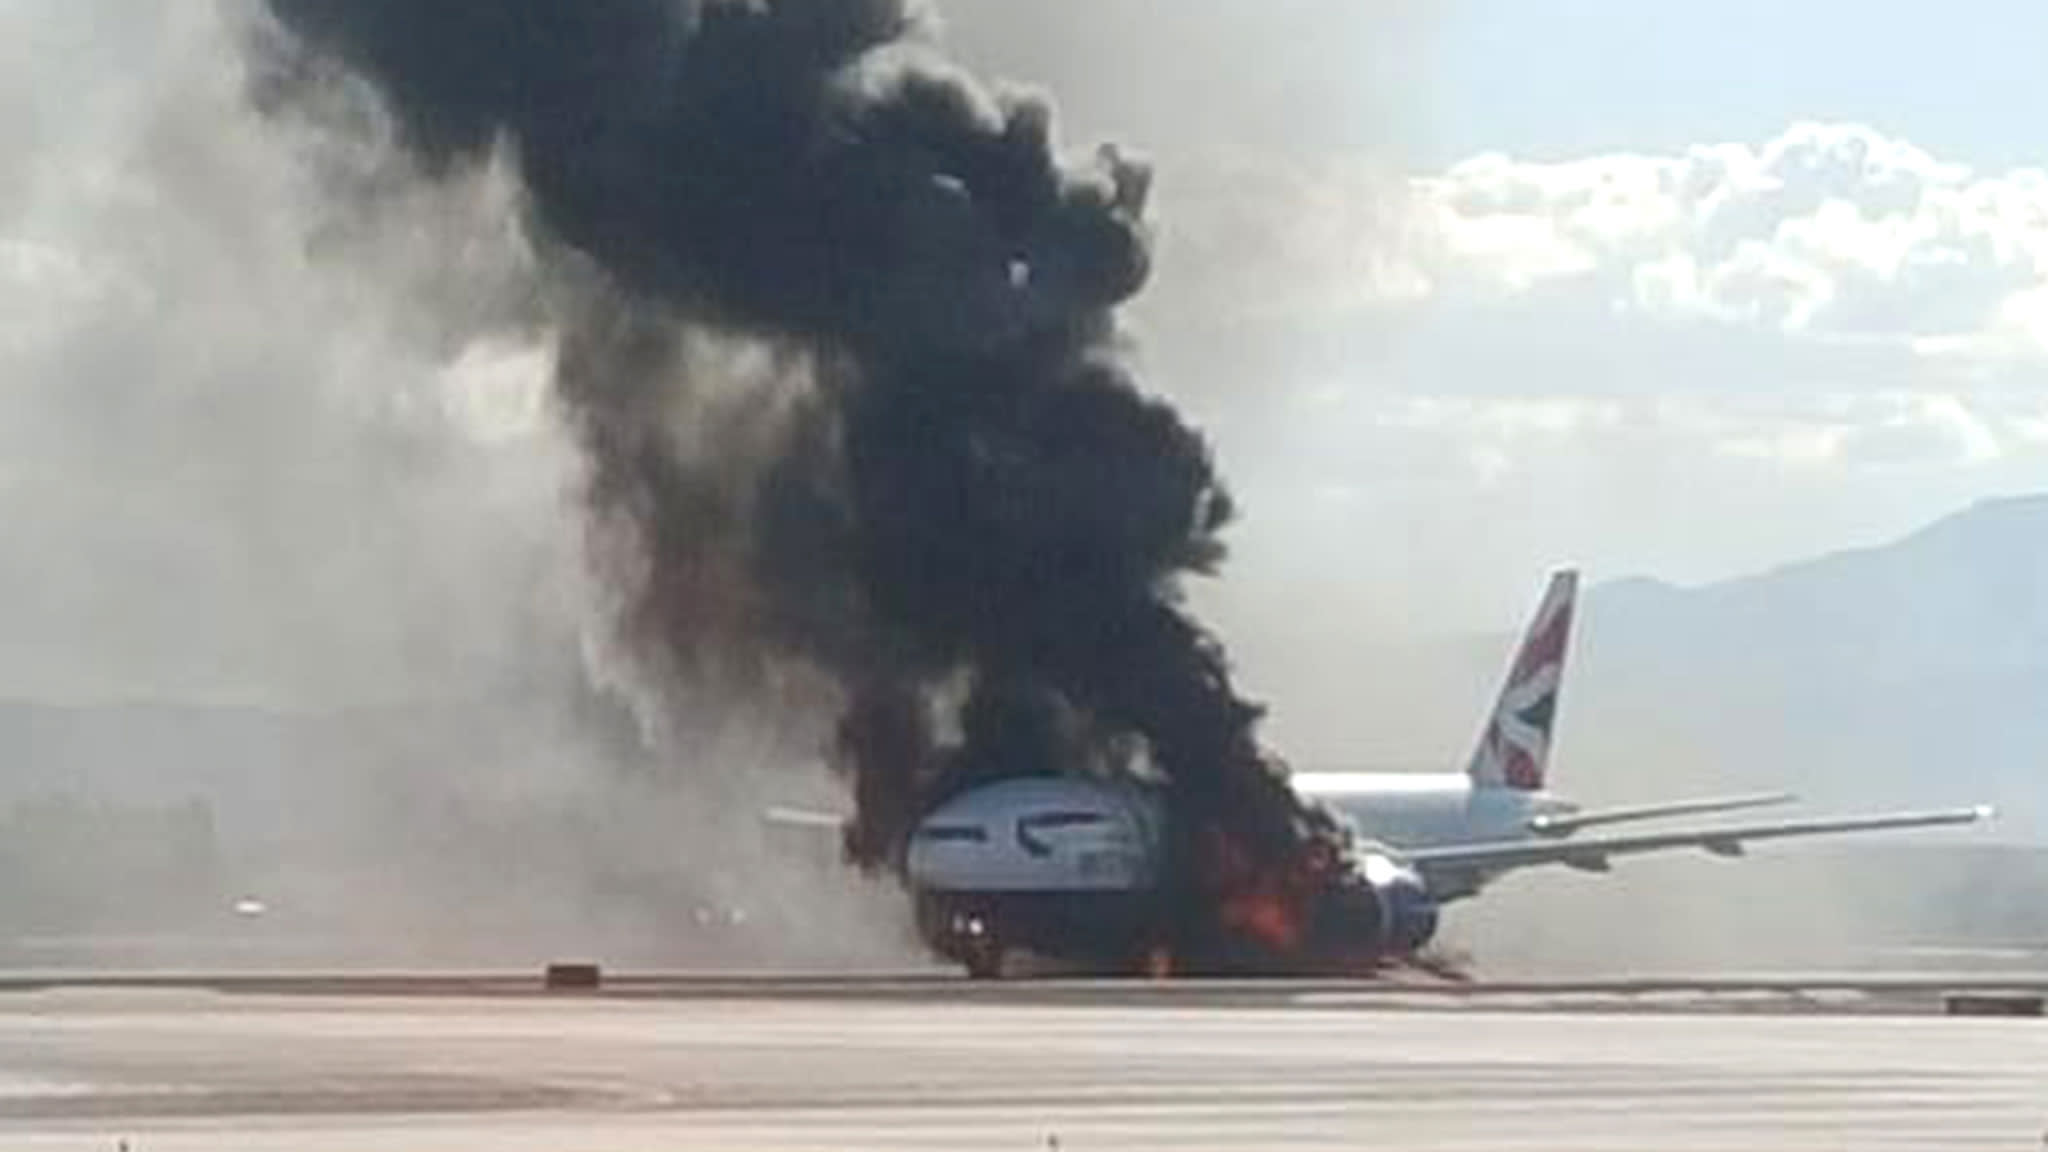 BA to help accident investigators after Las Vegas jet fire | Financial Times